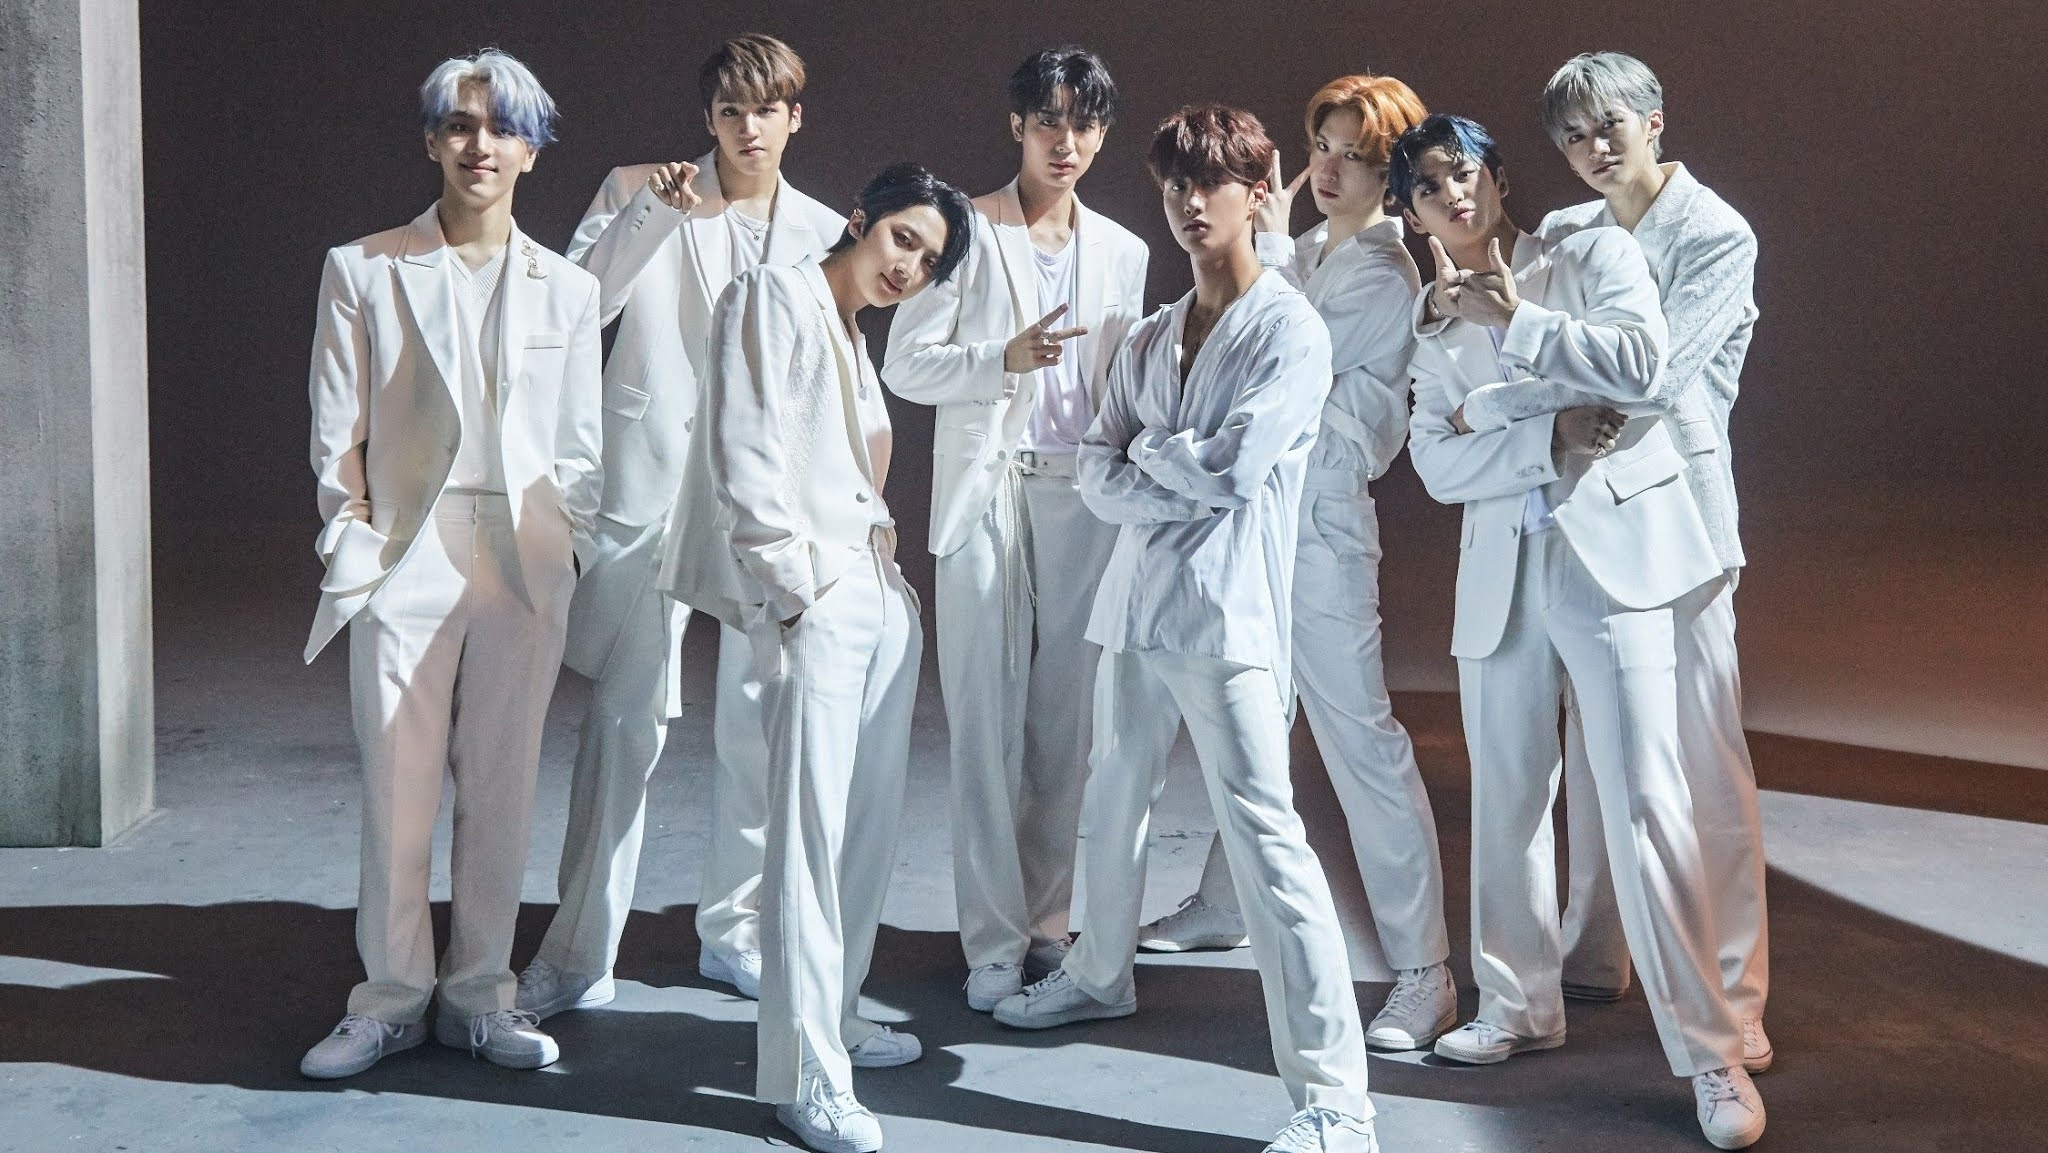 PENTAGON Topped iTunes Charts in Several Countries with 'WE:TH' Album